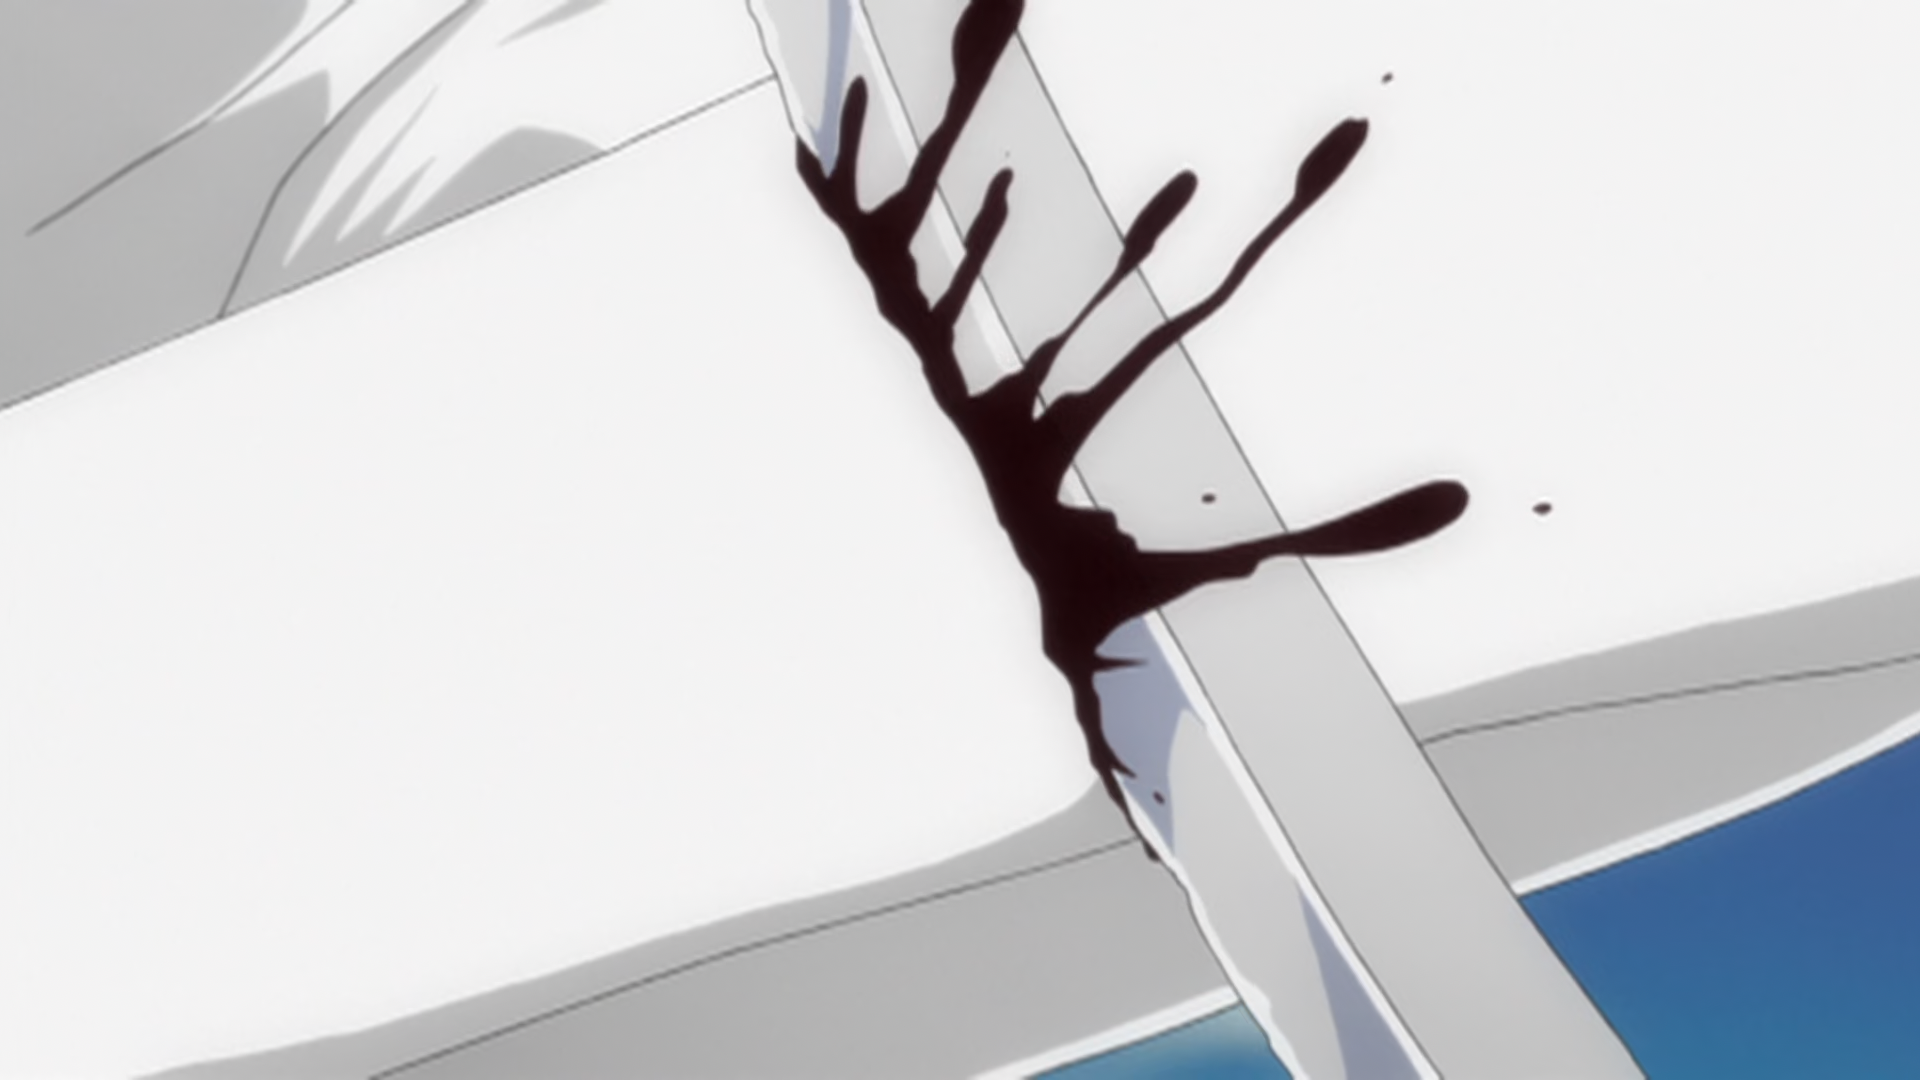 -http://images3.wikia.nocookie.net/__cb20100820083160/bleach/en/images/6/6b/NnoitraFinallyCut.png